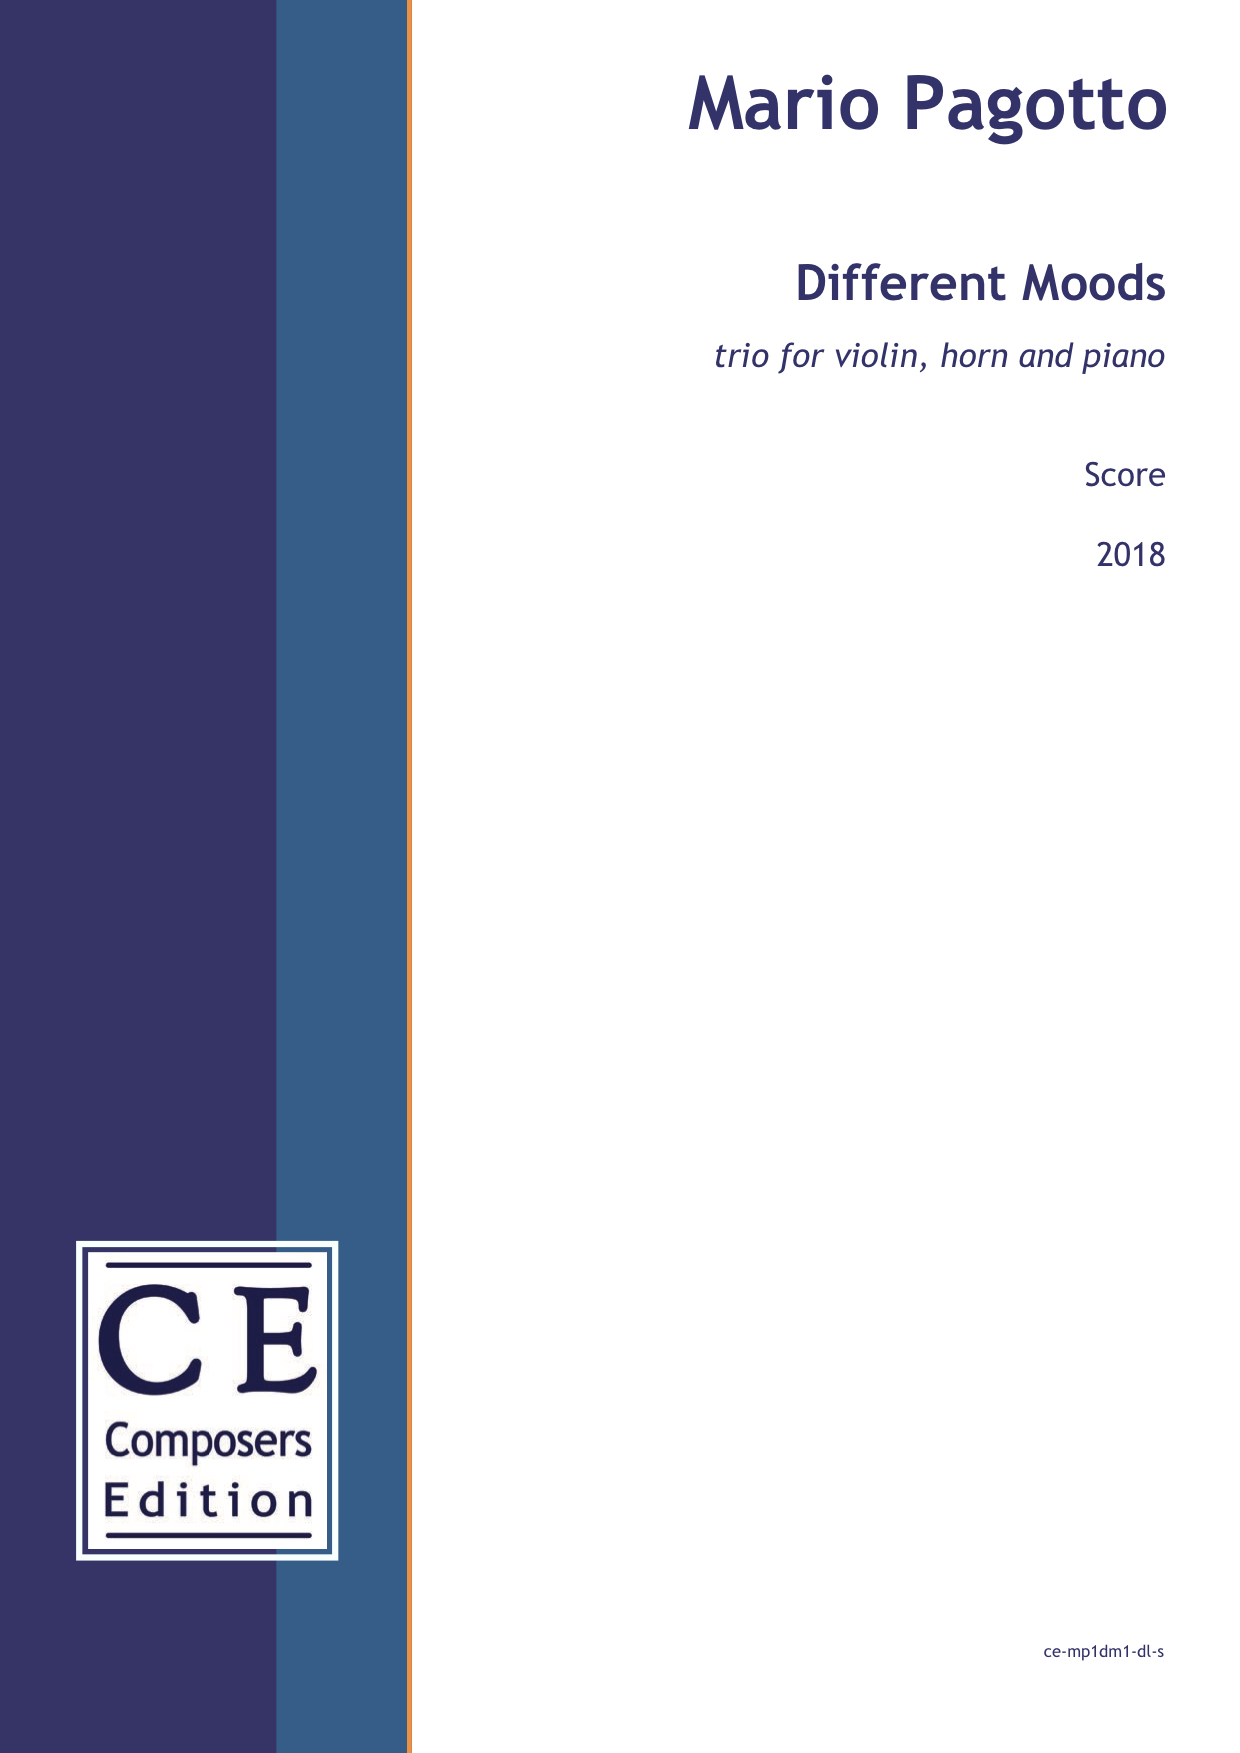 Mario Pagotto: Different Moods trio for violin, horn and piano